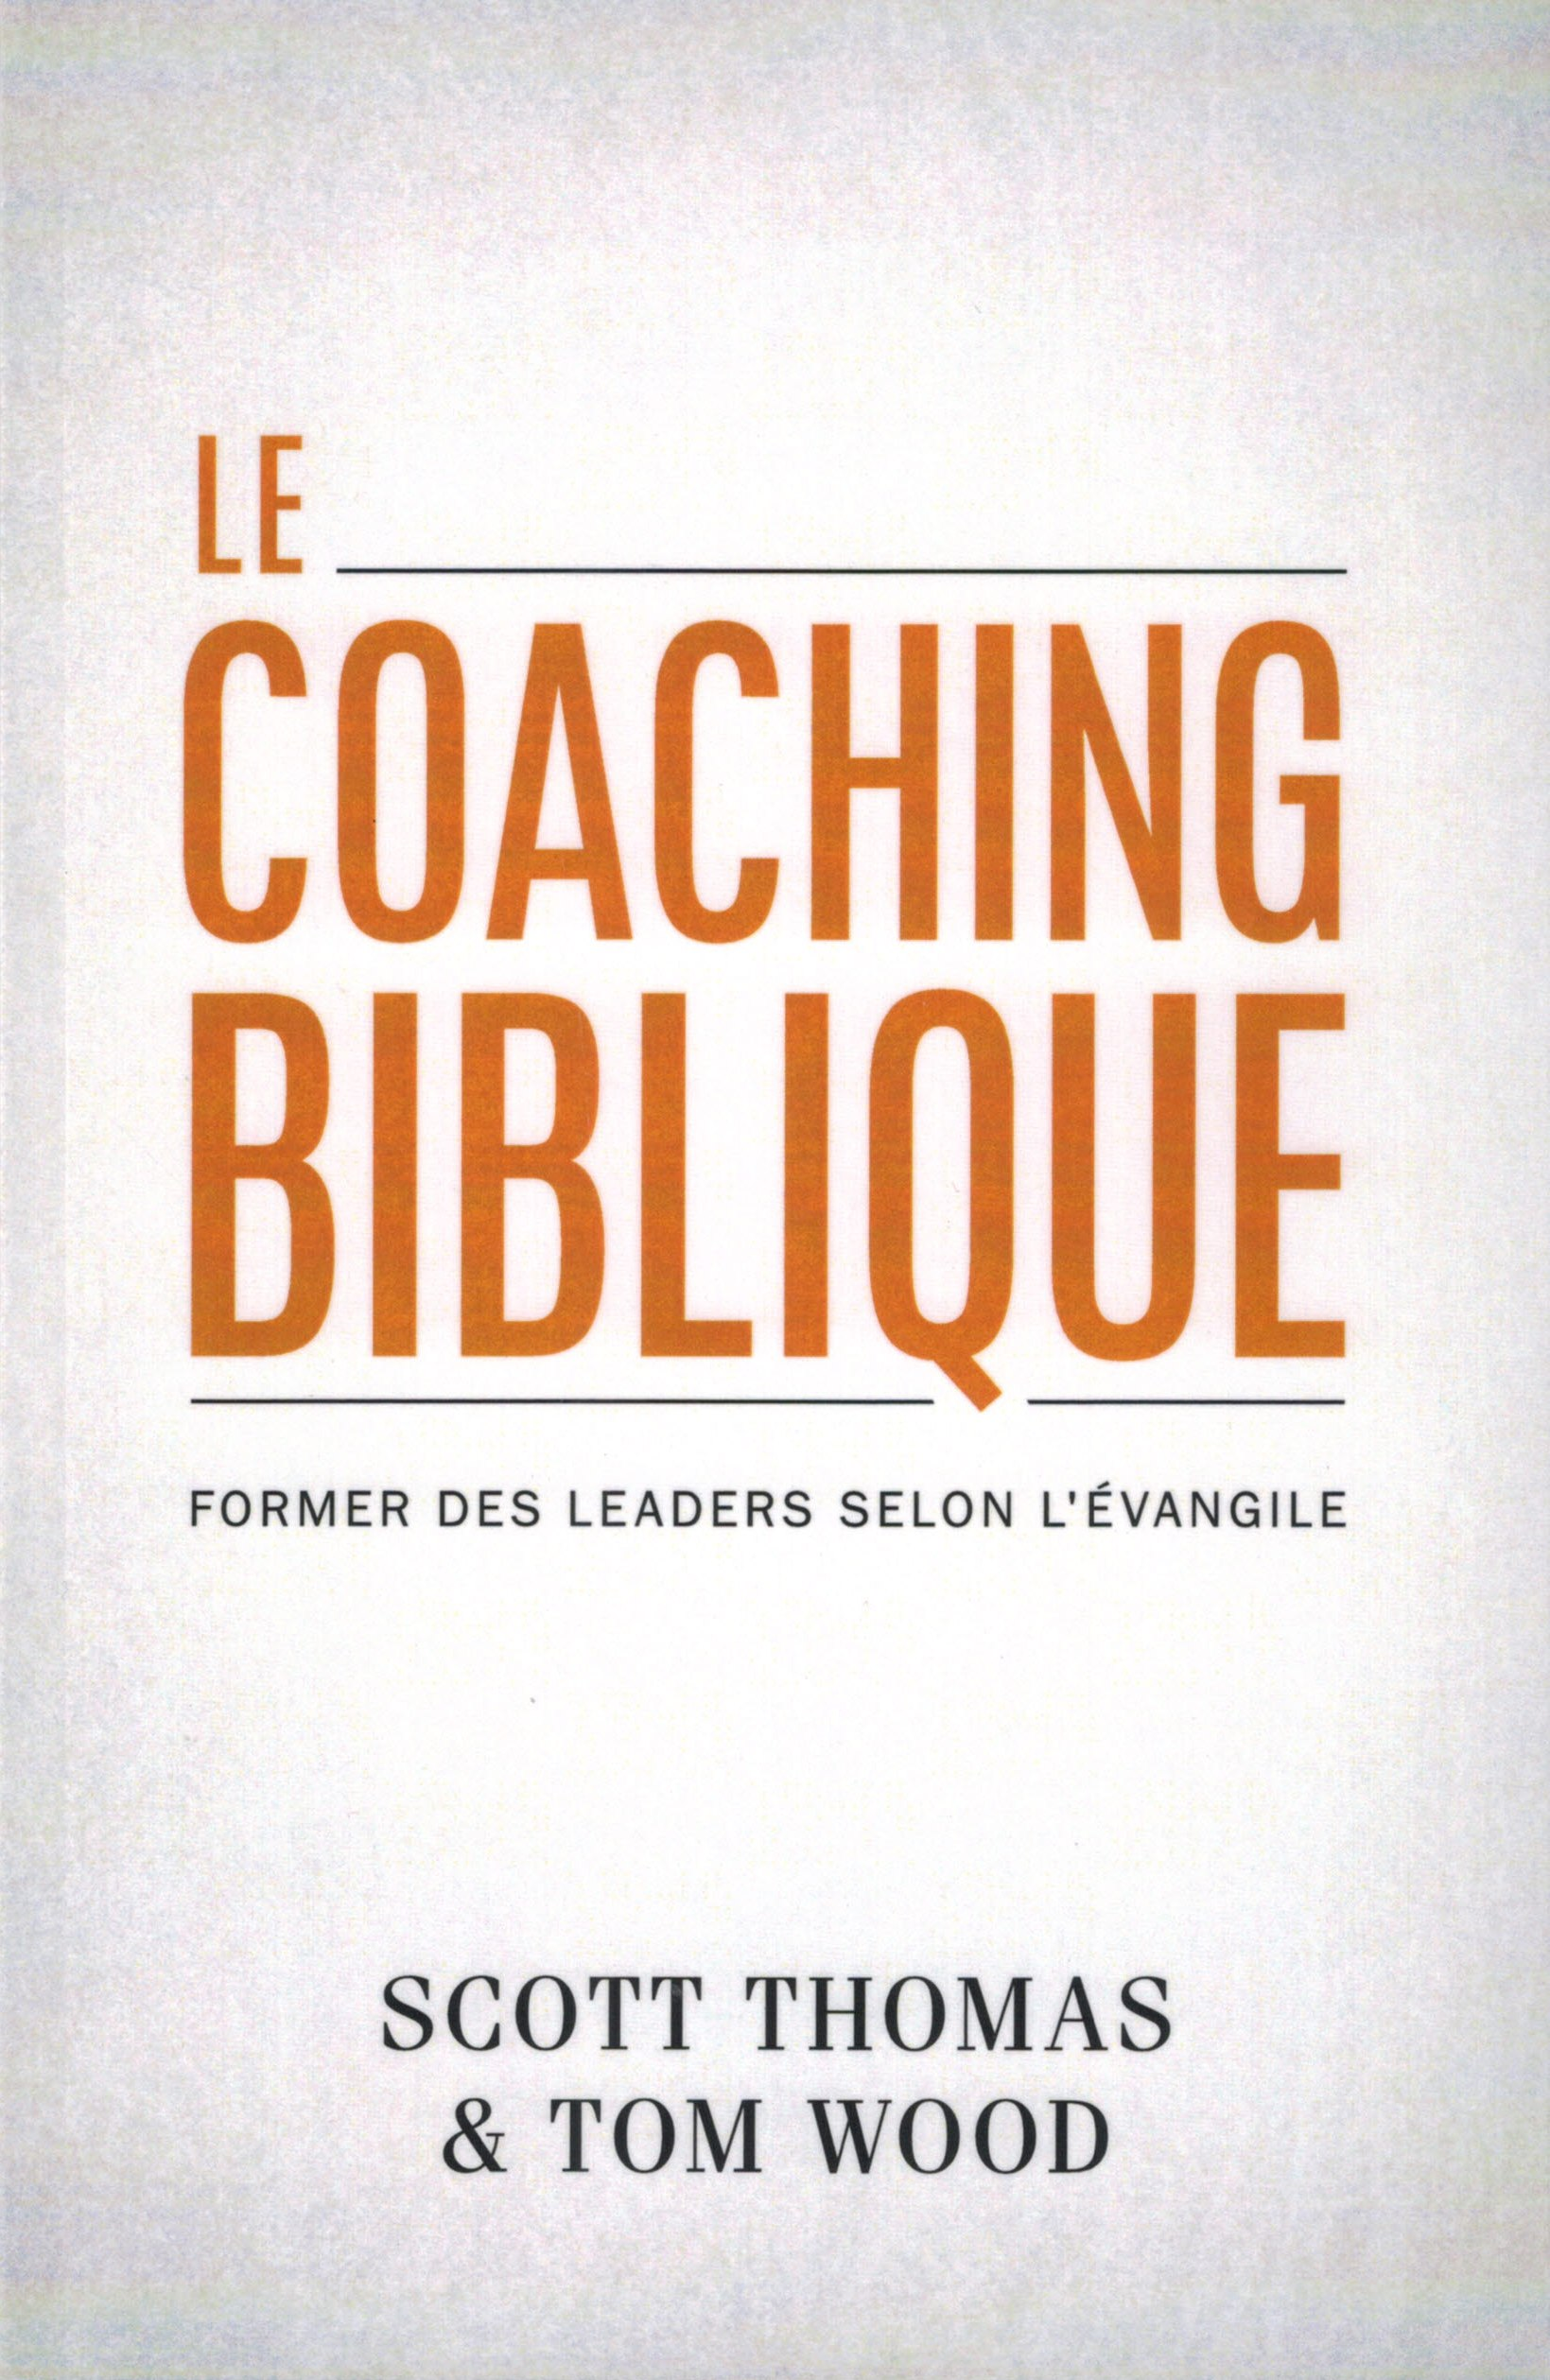 Le coaching biblique